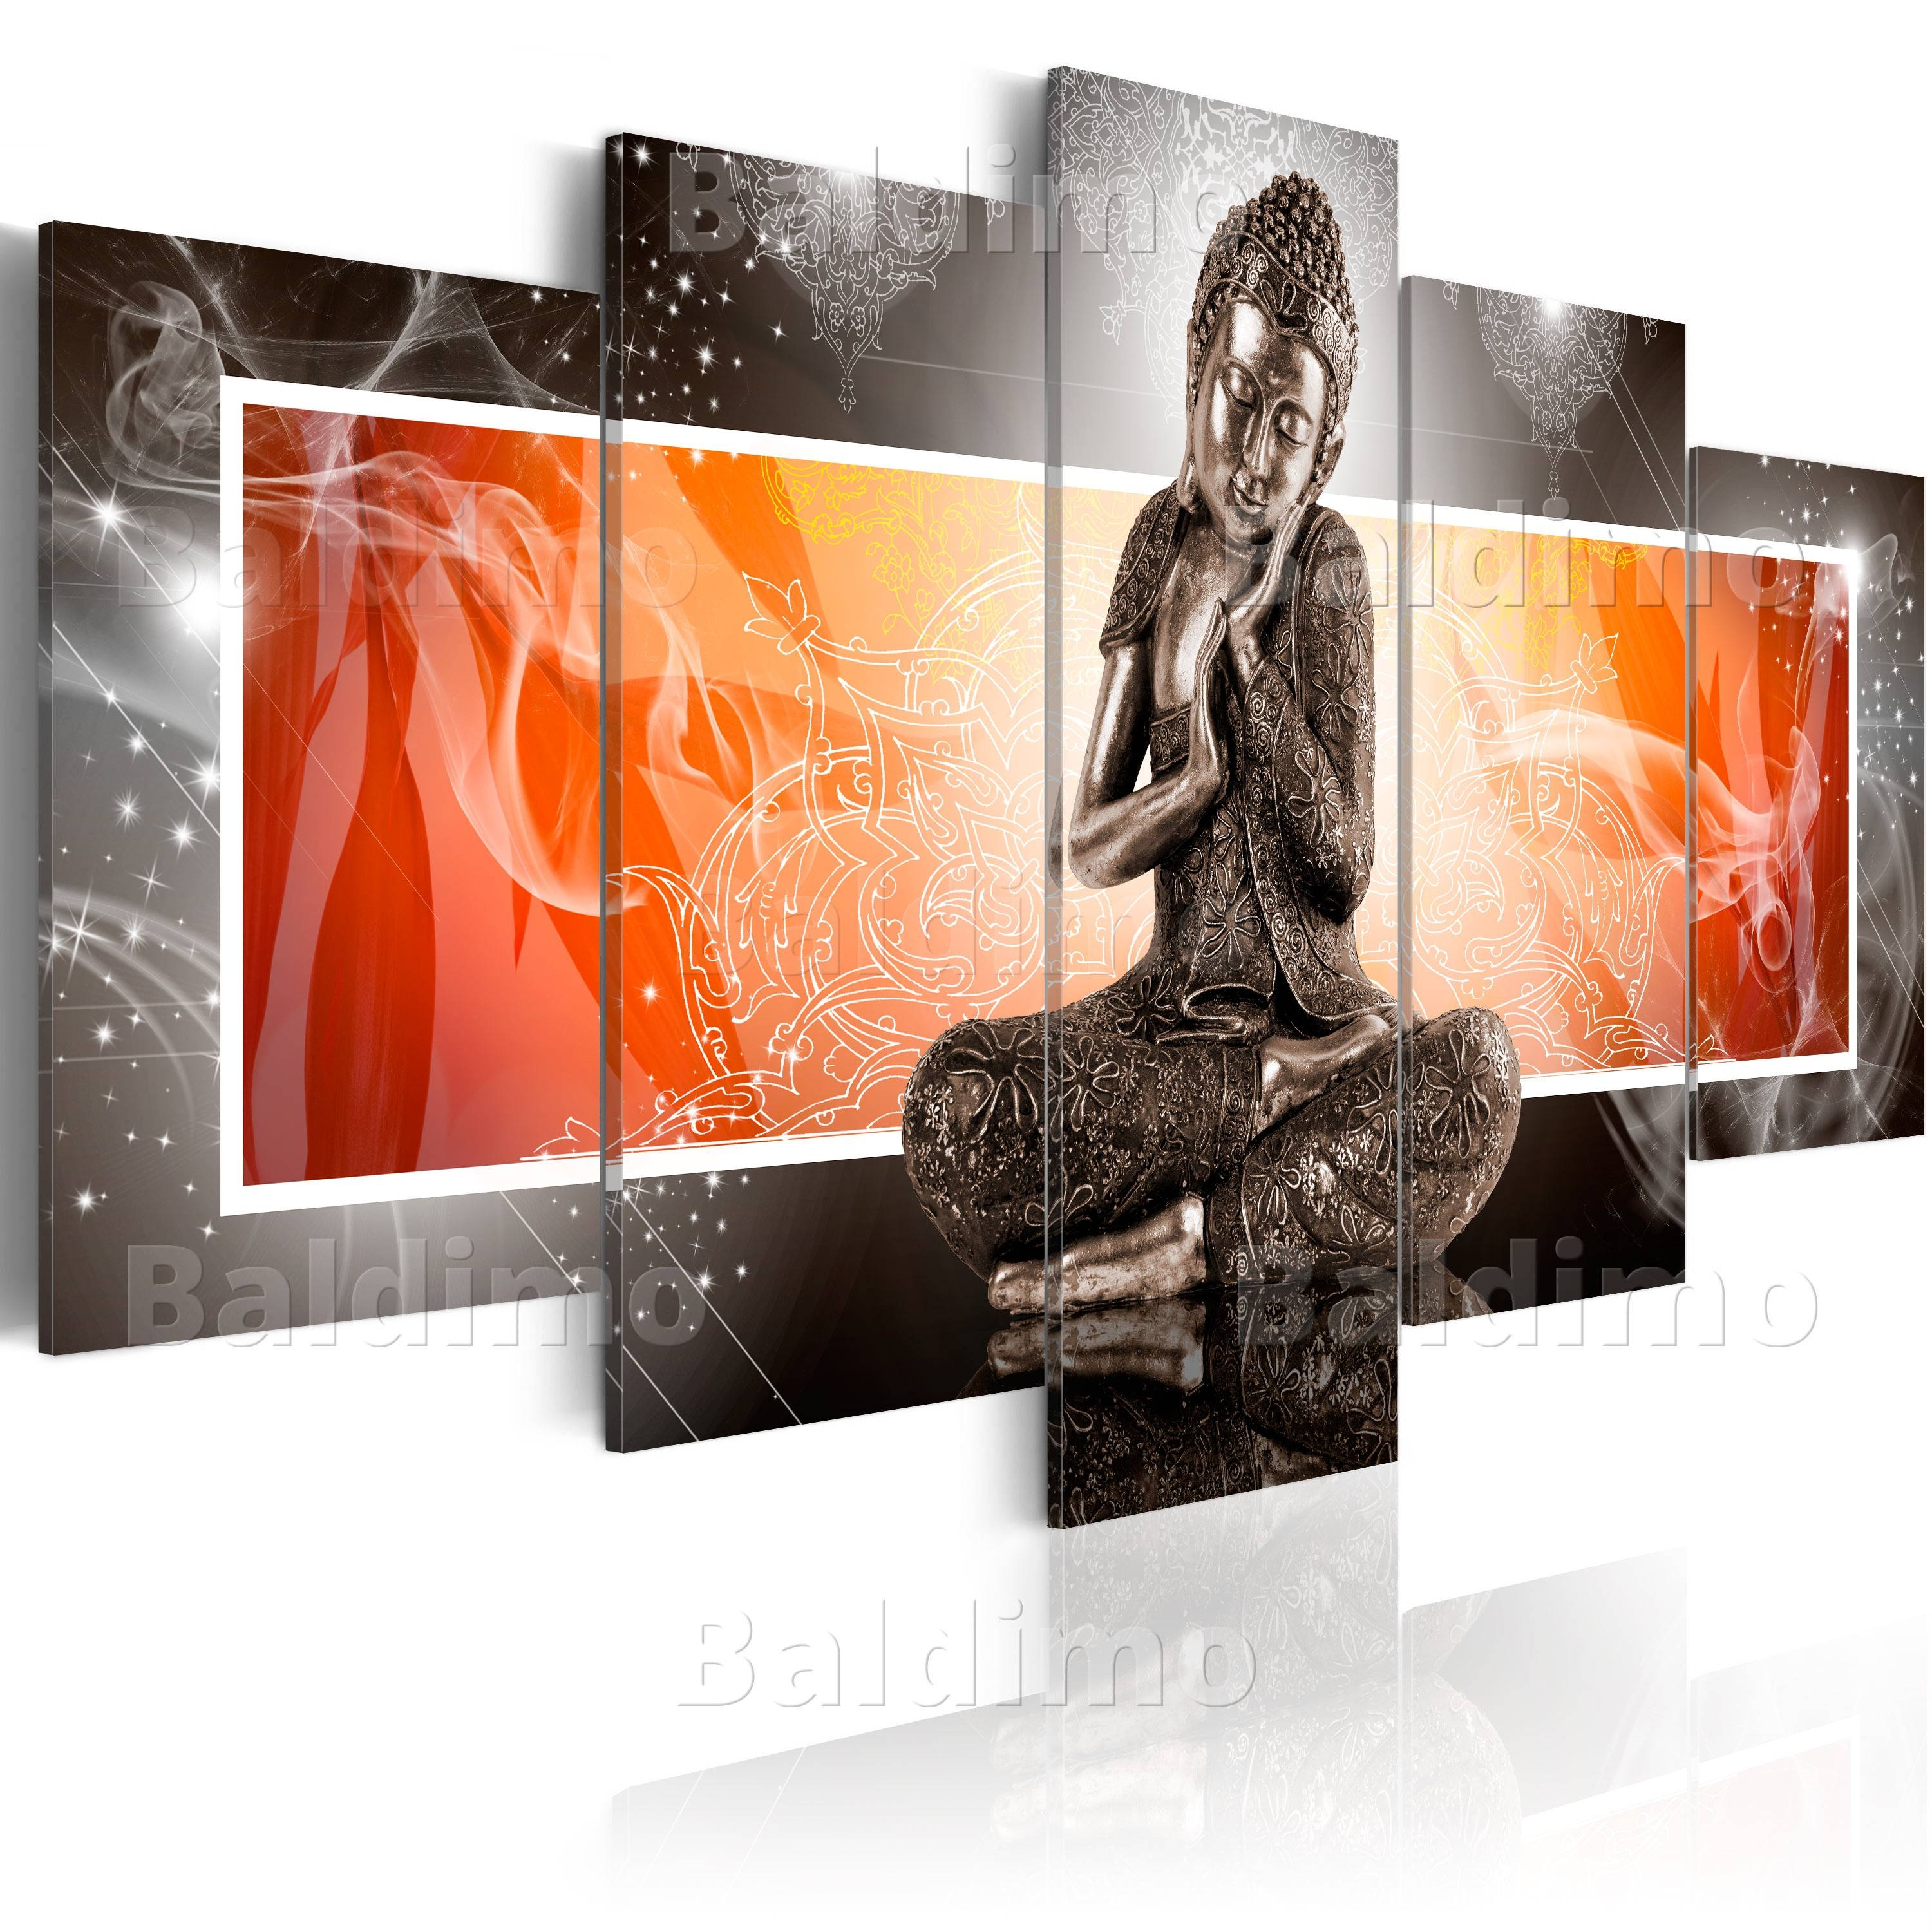 Large Canvas Wall Art Print + Image + Picture + Photo Buddha Within Most Up To Date Large Buddha Wall Art (View 10 of 15)